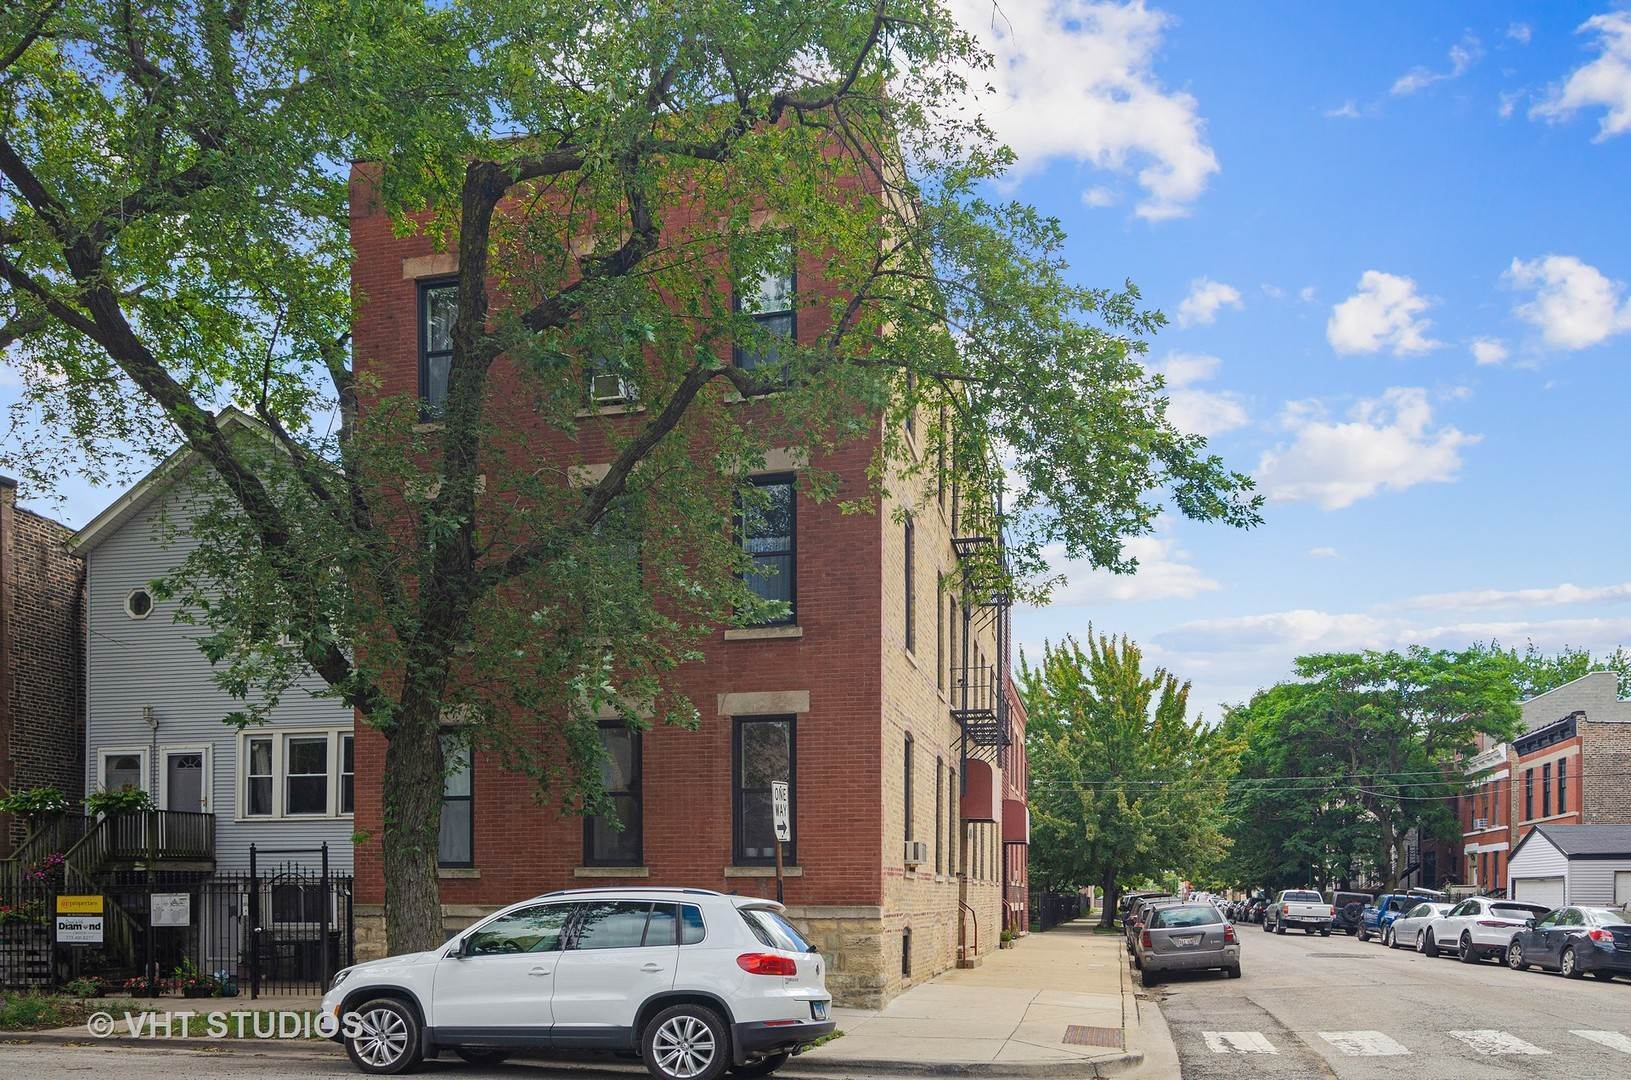 Commercial for Sale at 537 N Claremont Avenue Chicago, Illinois 60612 United States